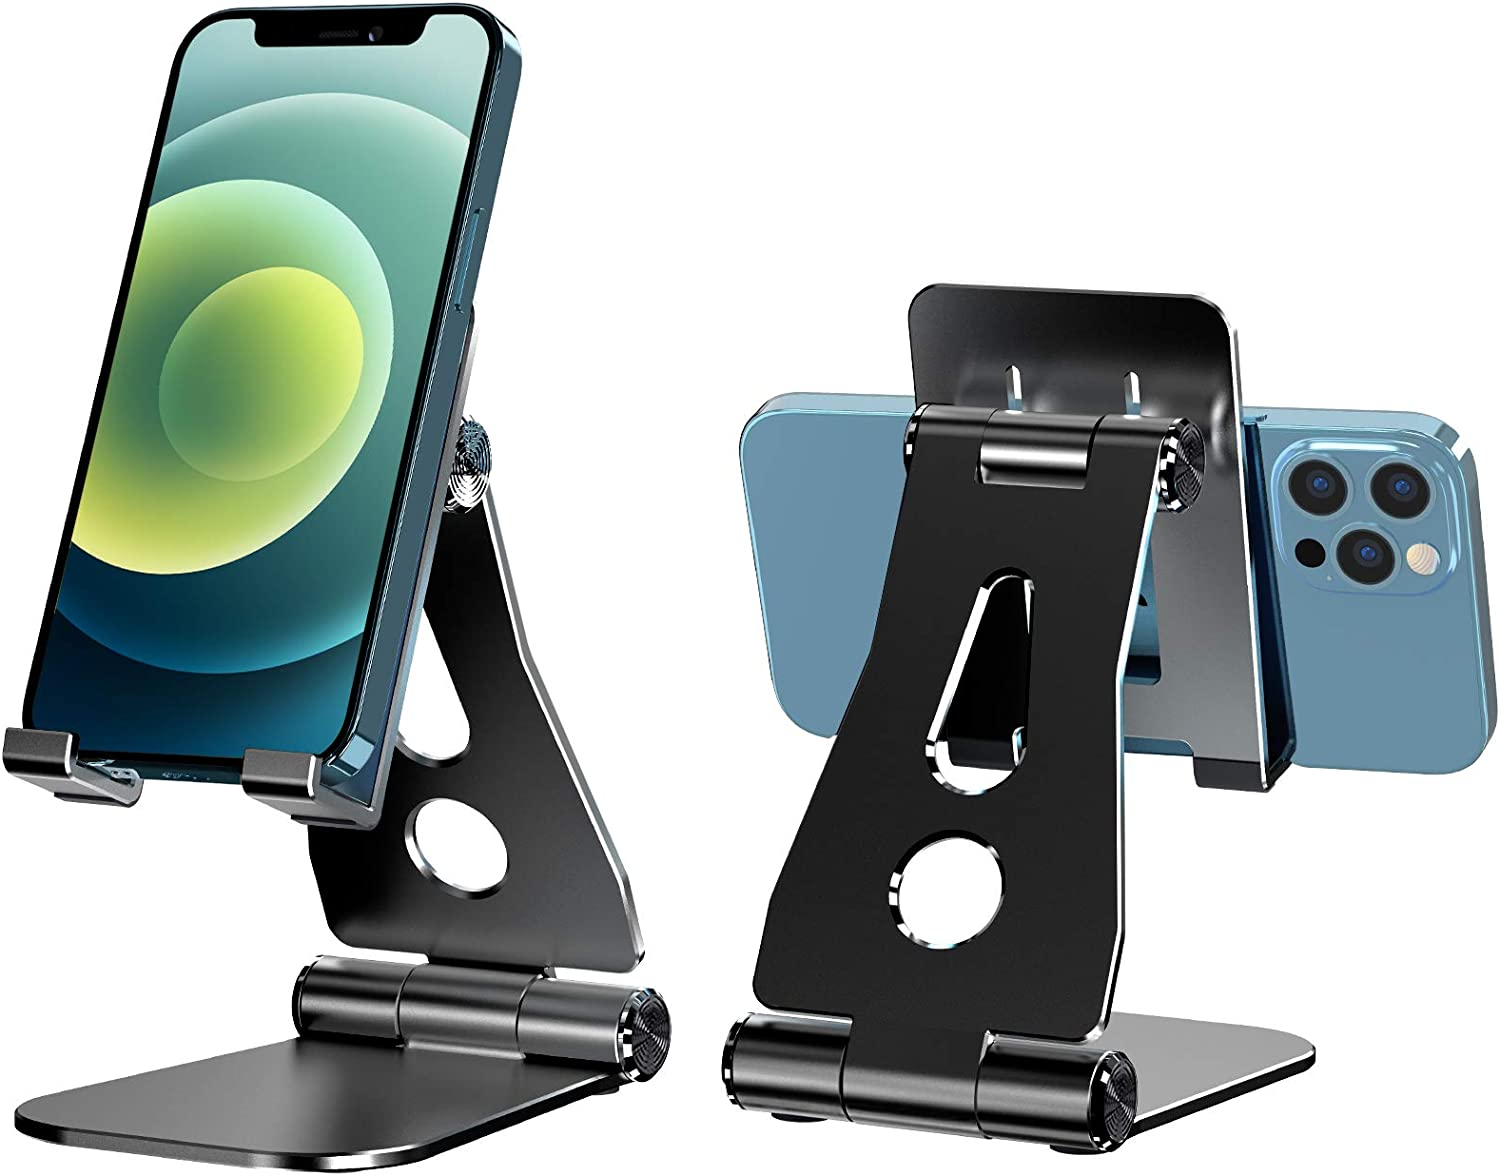 MROCO Adjustable Cell Phone Stand for Desk, Portable & Foldable Desktop Aluminum Phone Holder Cradle Dock Compatible with Phone 12 Mini 11 Pro Xs Xs Max Xr X 8 7 6 6s Plus Smartphones, Tablets, Black